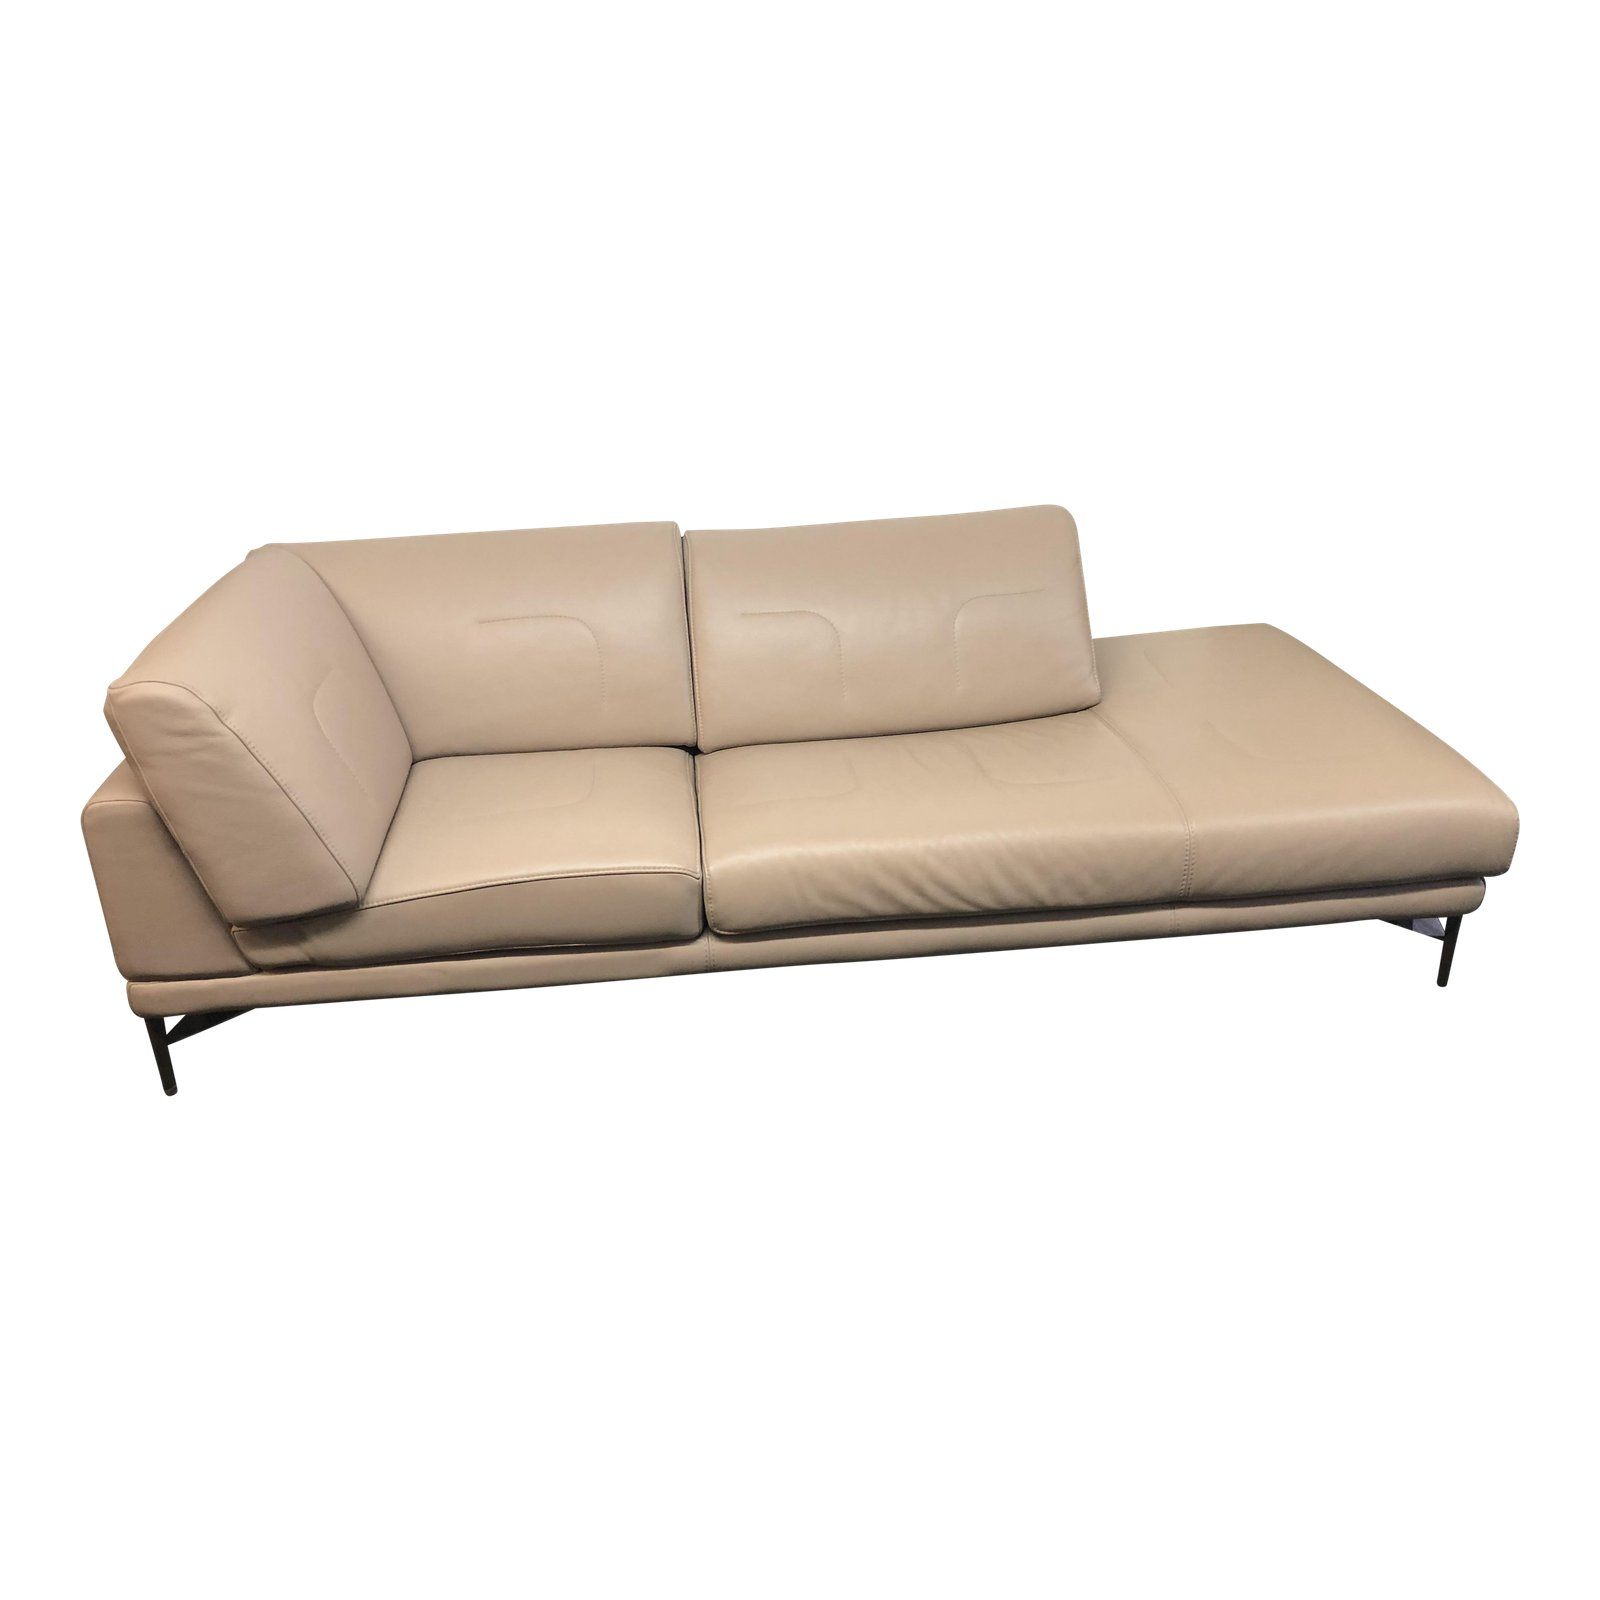 Cool Roche Bobois Utopic Chaise Sofa Original Price 5 951 Ocoug Best Dining Table And Chair Ideas Images Ocougorg